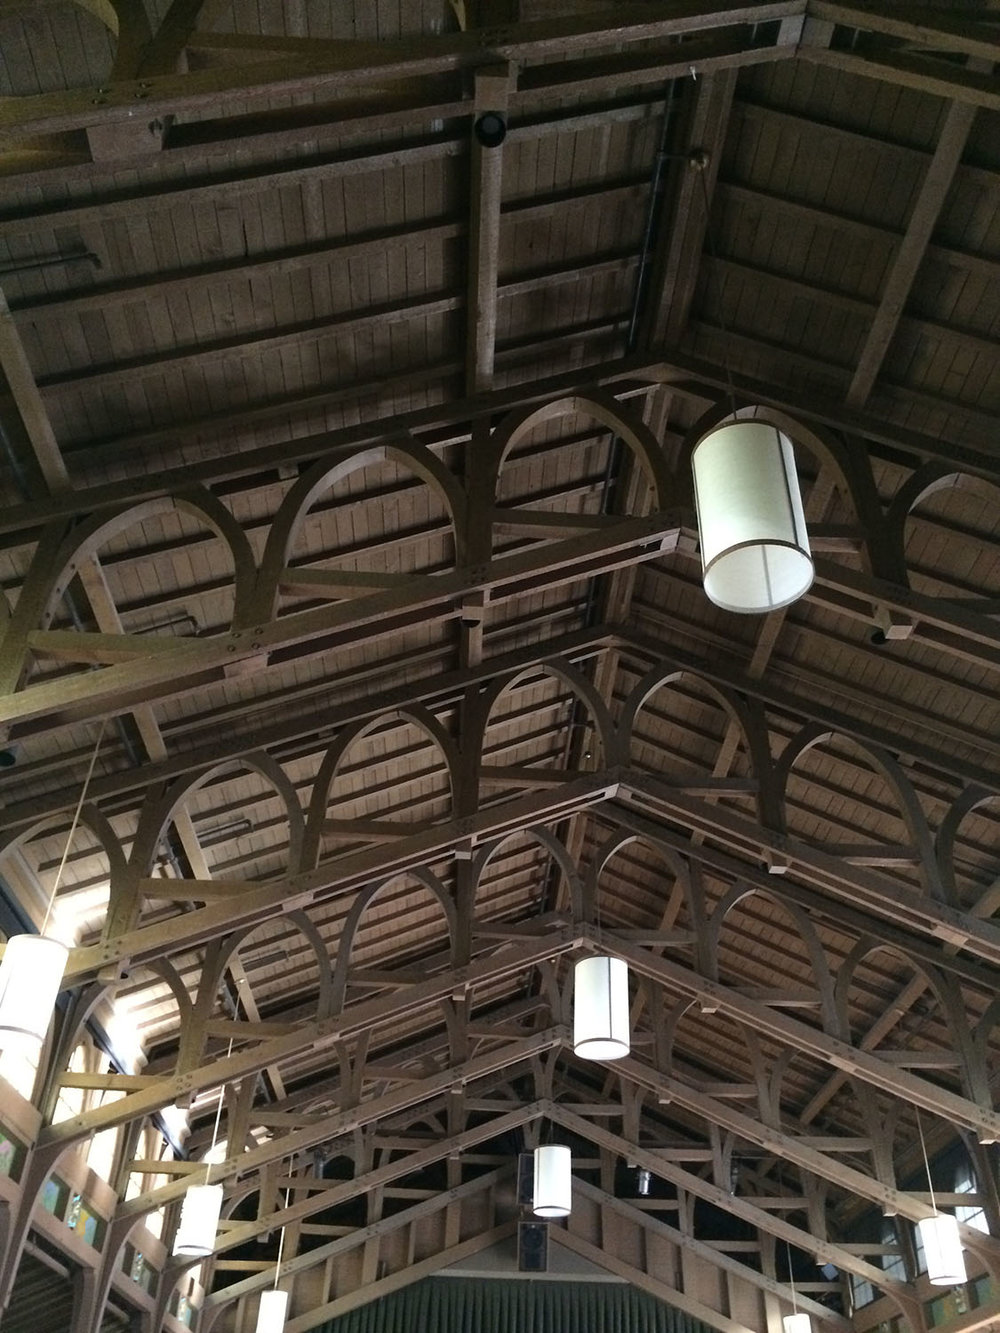 Great hall ceiling beams at Asilomar.